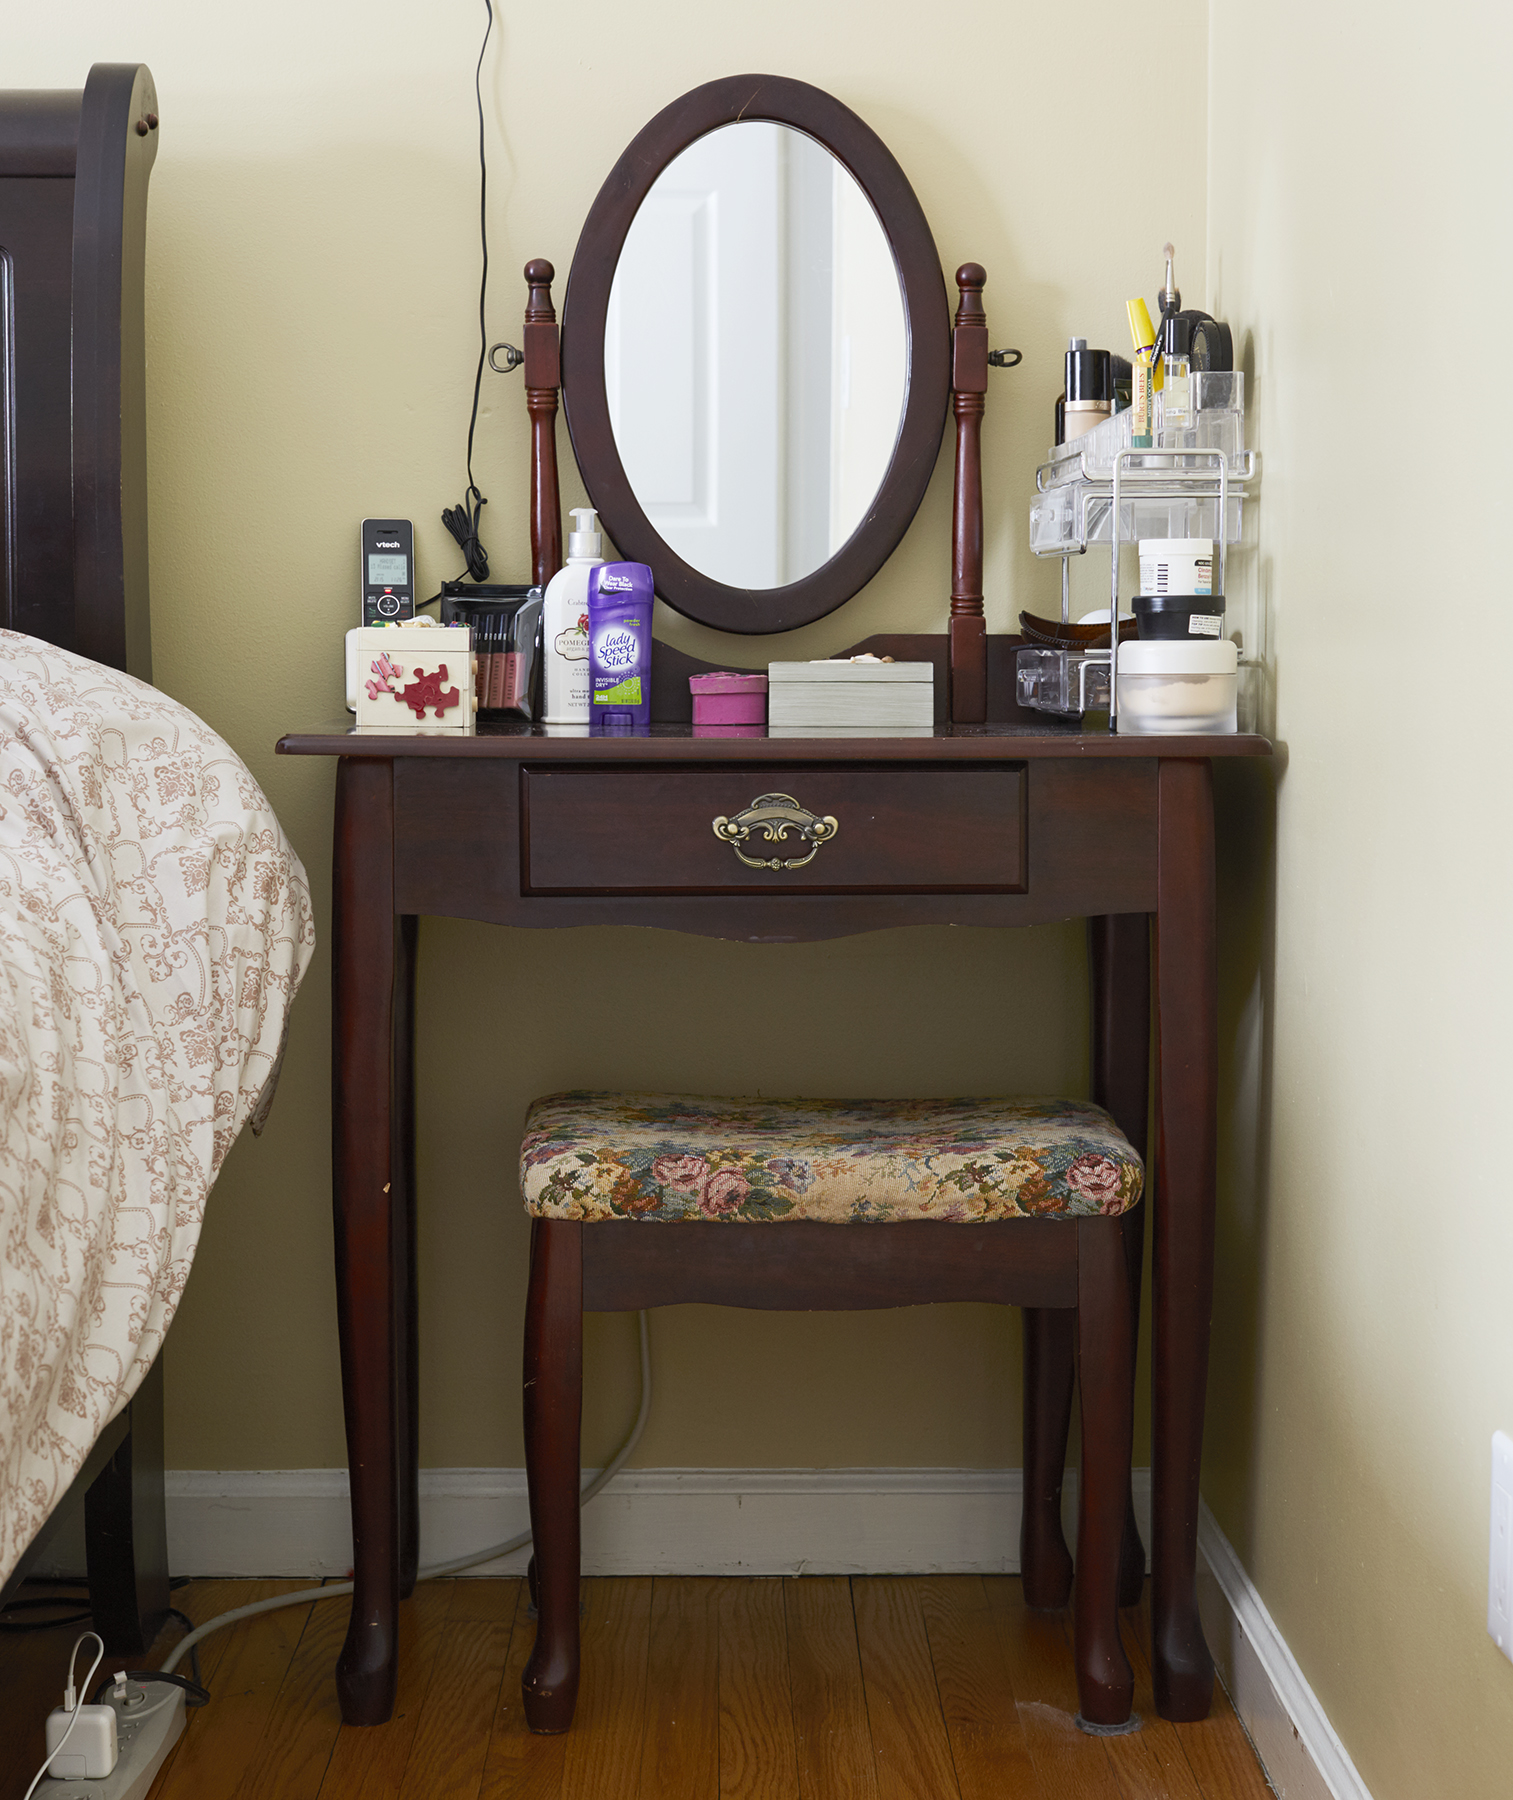 The Vanity: Before